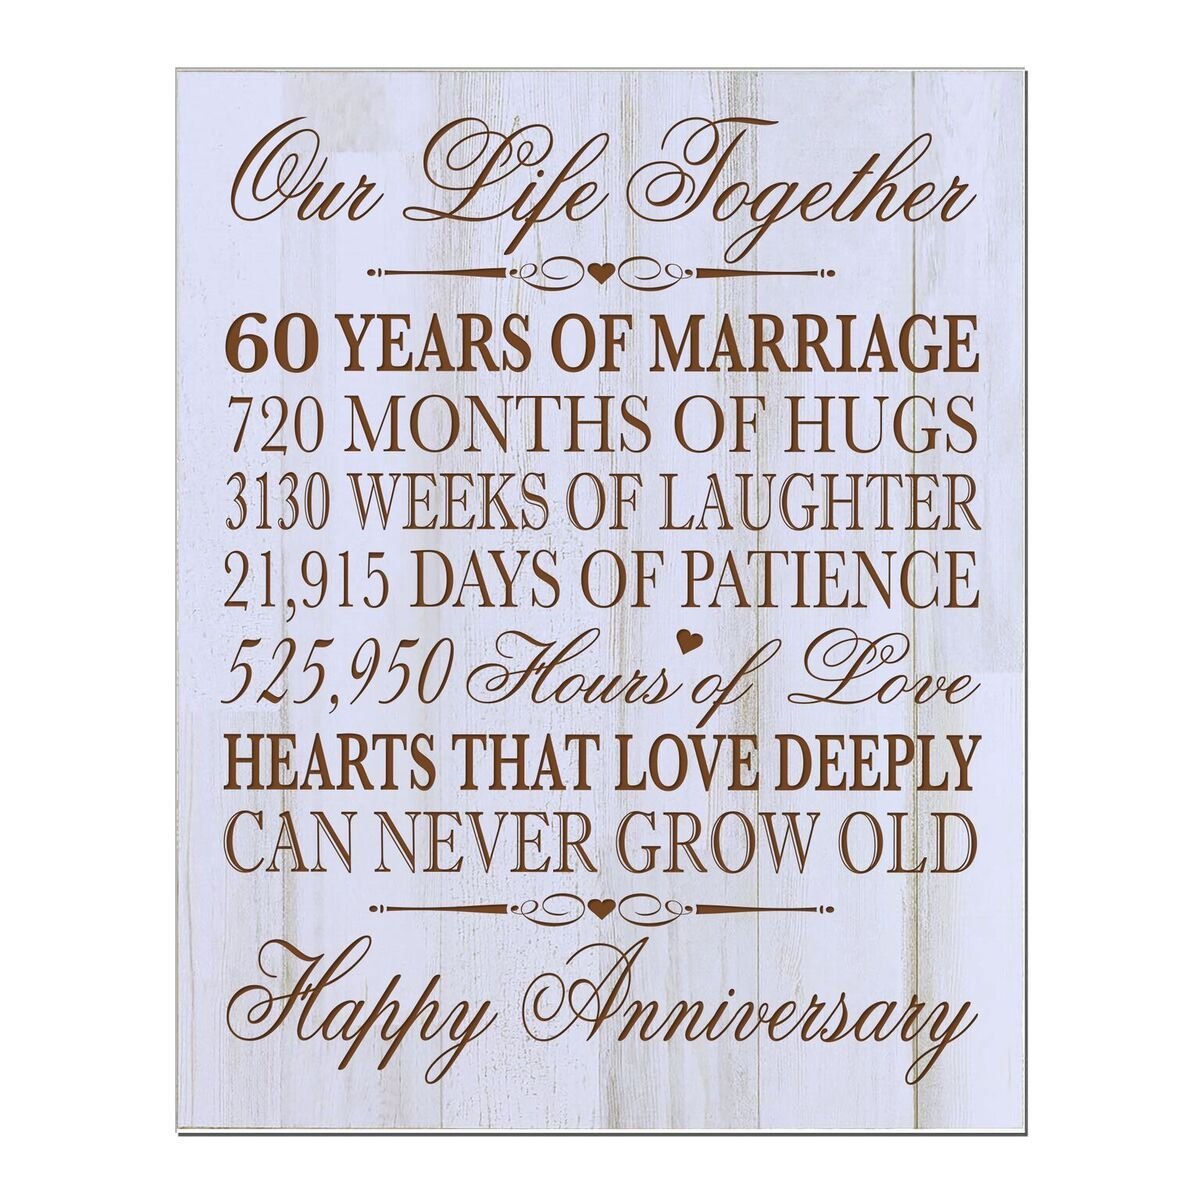 LifeSong Milestones 60th Wedding Anniversary Wall Plaque Gifts for Couple, 60th for Her,60th Wedding for Him 12'' W X 15'' H Wall Plaque (Distressed Wood)